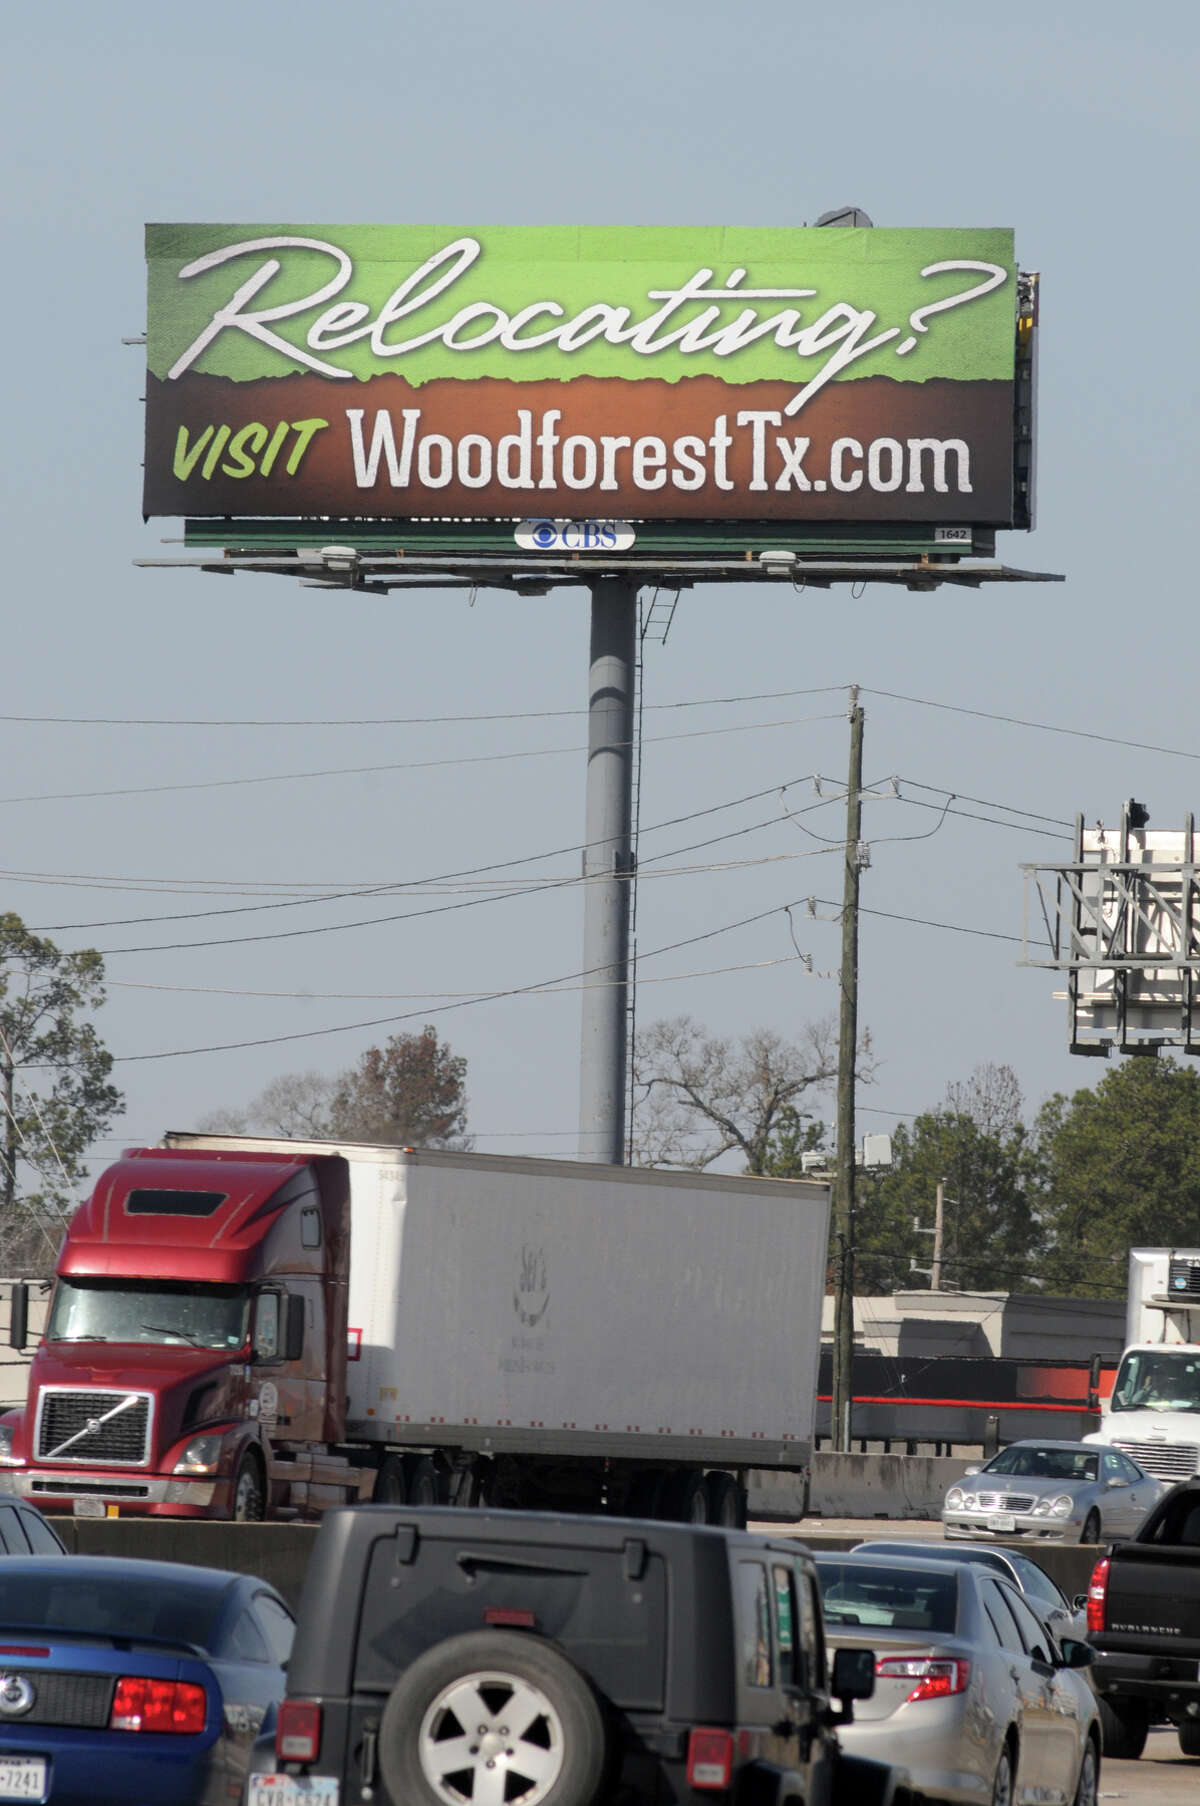 Woodforest area near The Woodlands.